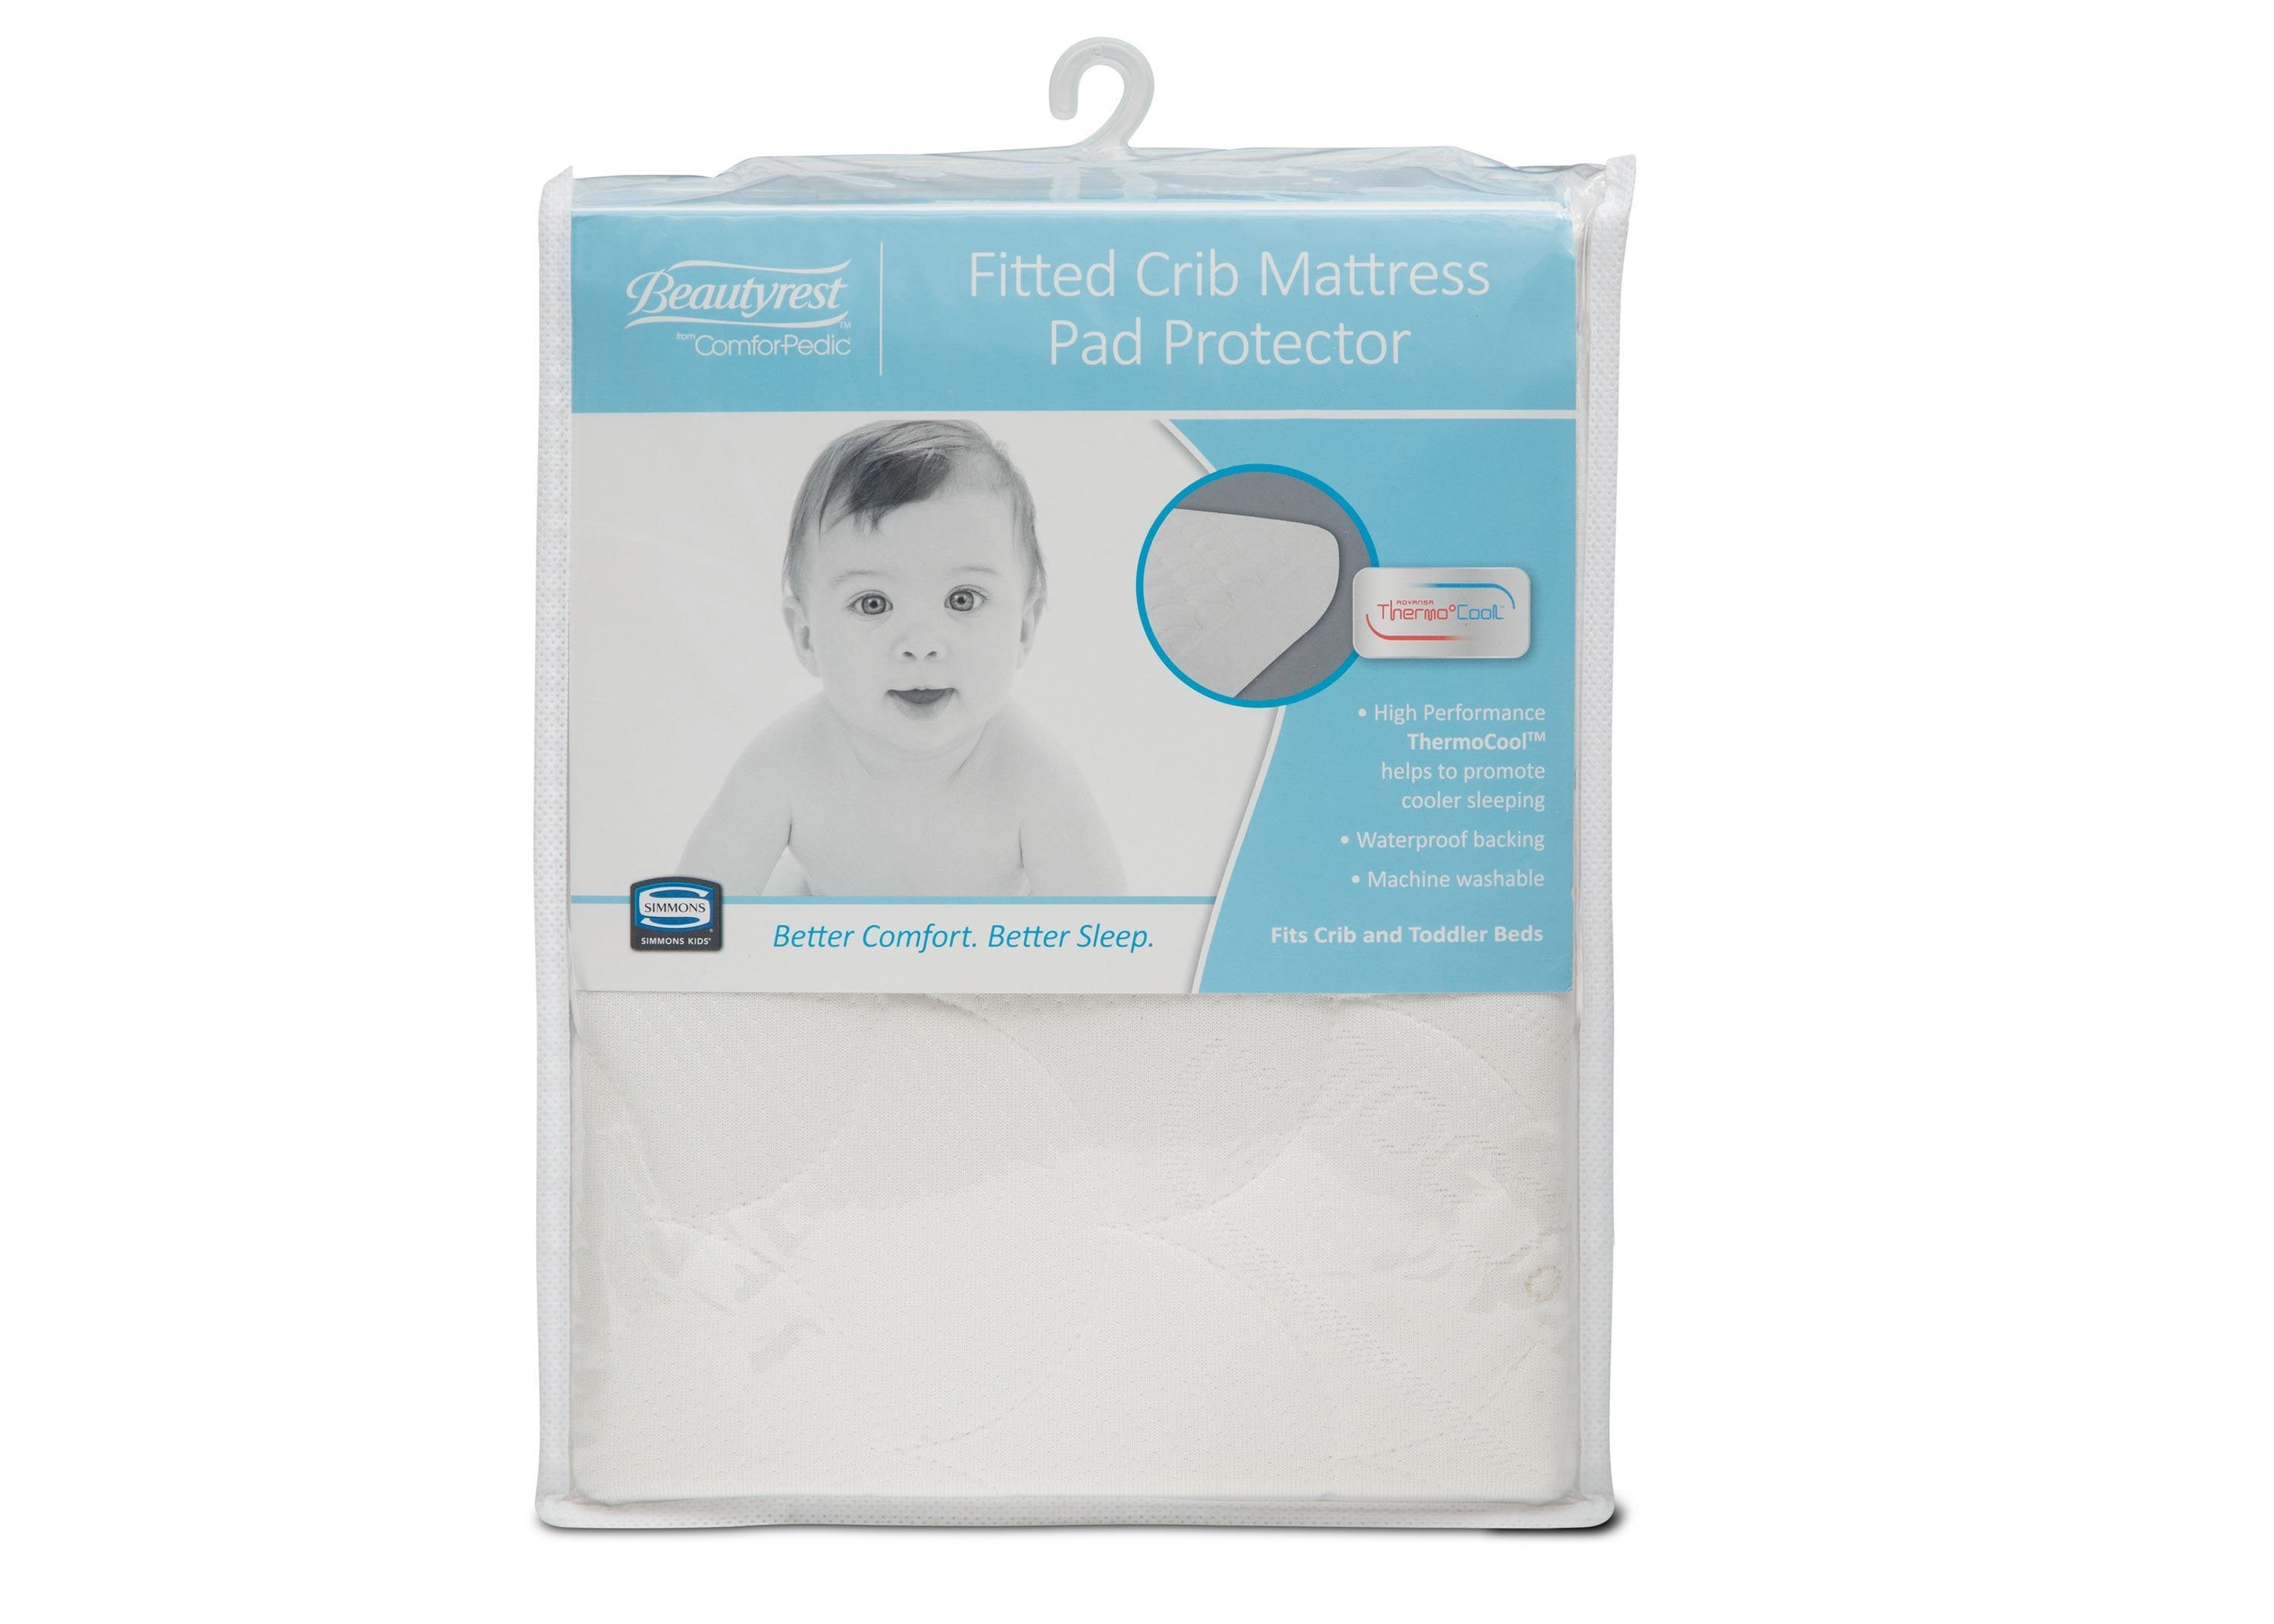 pad good stuff bassinet cotton from gimme naturepedic the store bassinetcrib cribs organic oval crib mattress